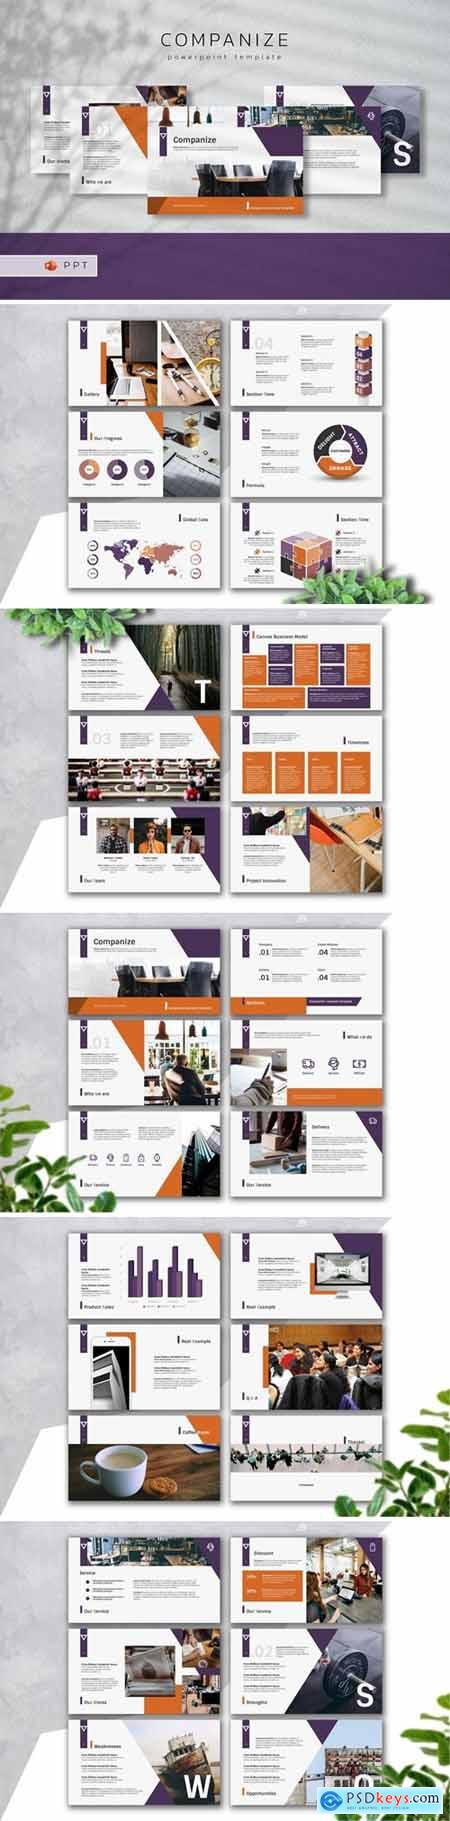 COMPANIZE Powerpoint, Keynote and Google Slides Templates